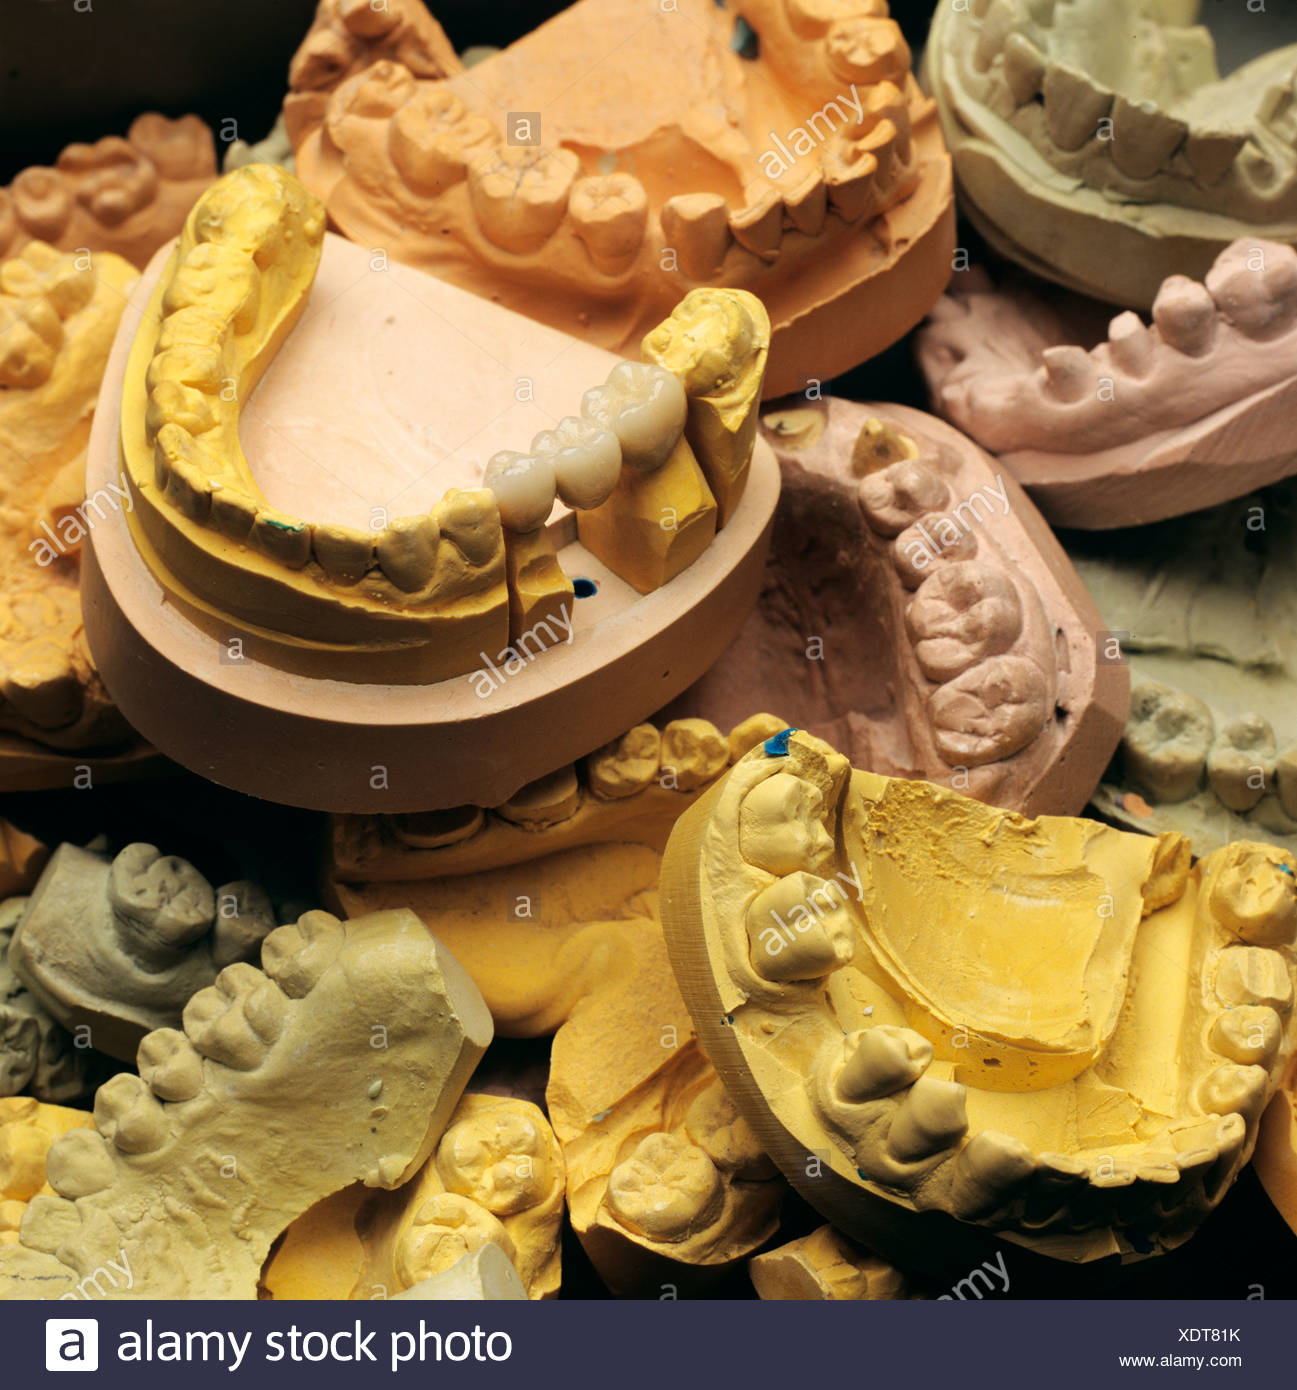 Plaster casts, models in a dental laboratory - Stock Image